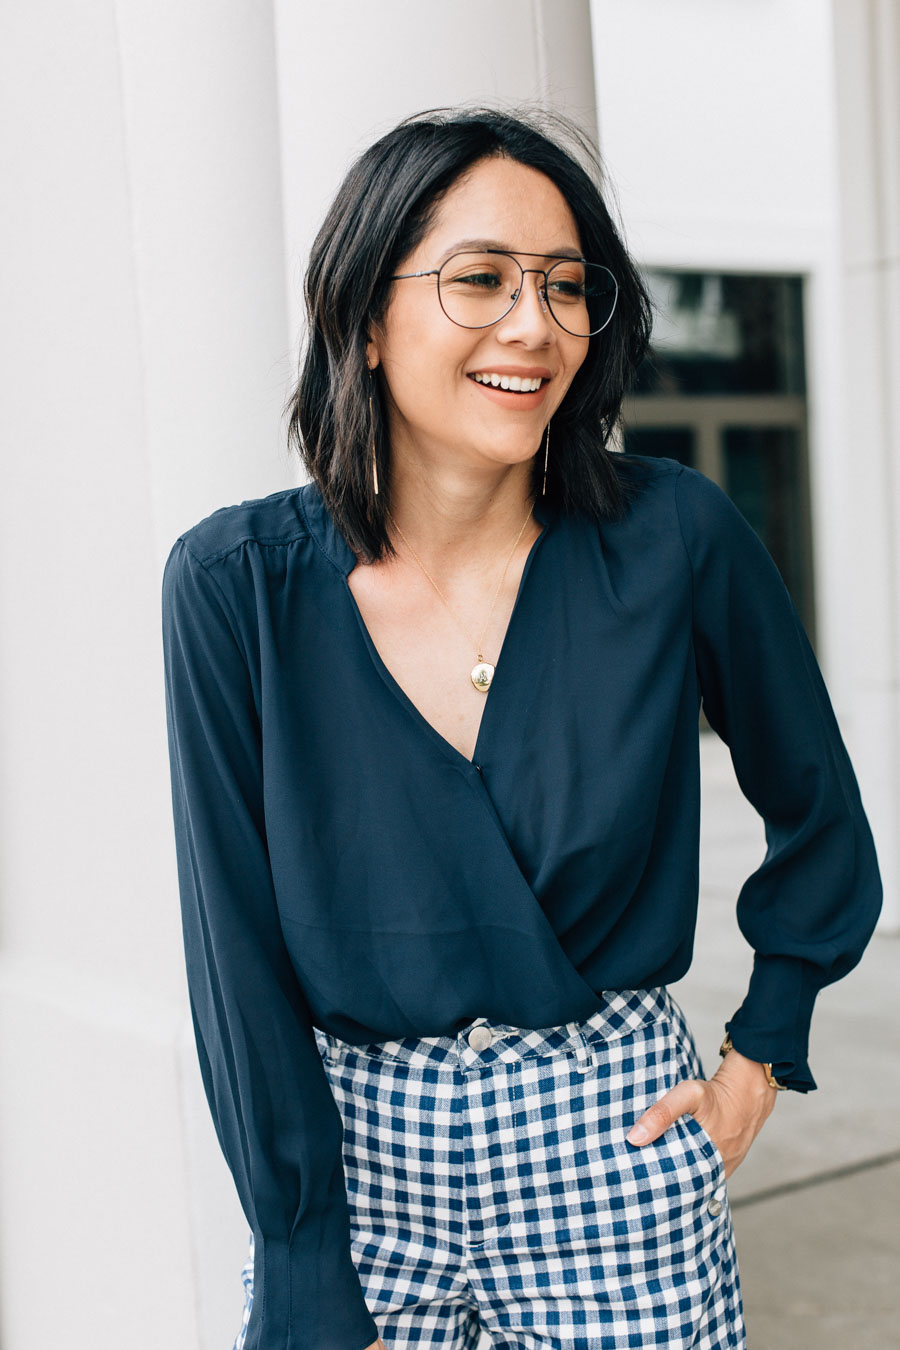 Lilly Beltran styles a Scotch & Soda wrap top with gingham pants and black naked sandals for a trendy office look.